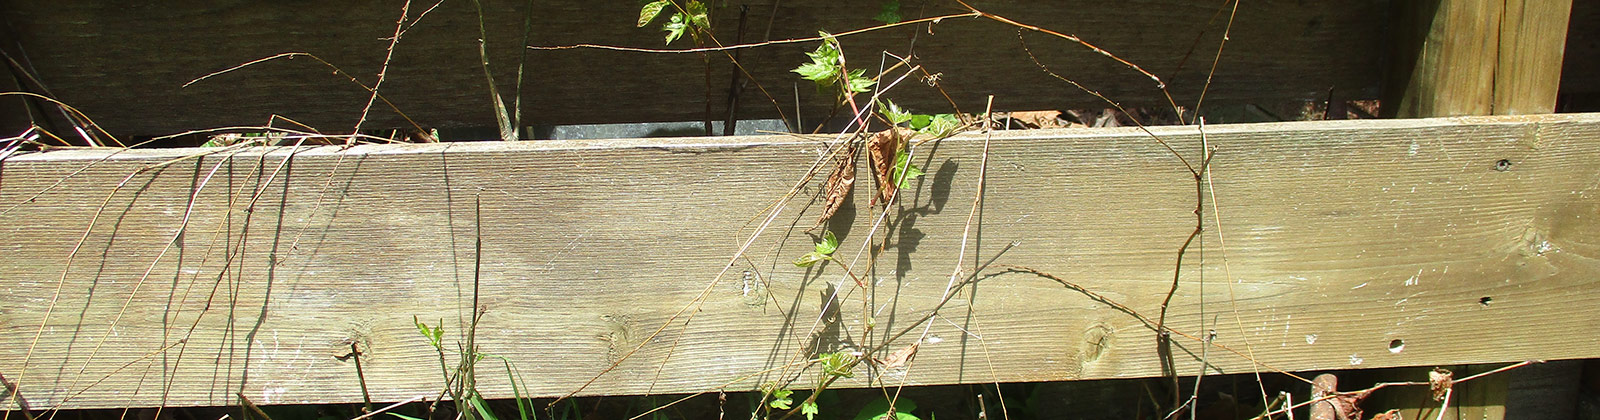 Vines grow on a wooden fence